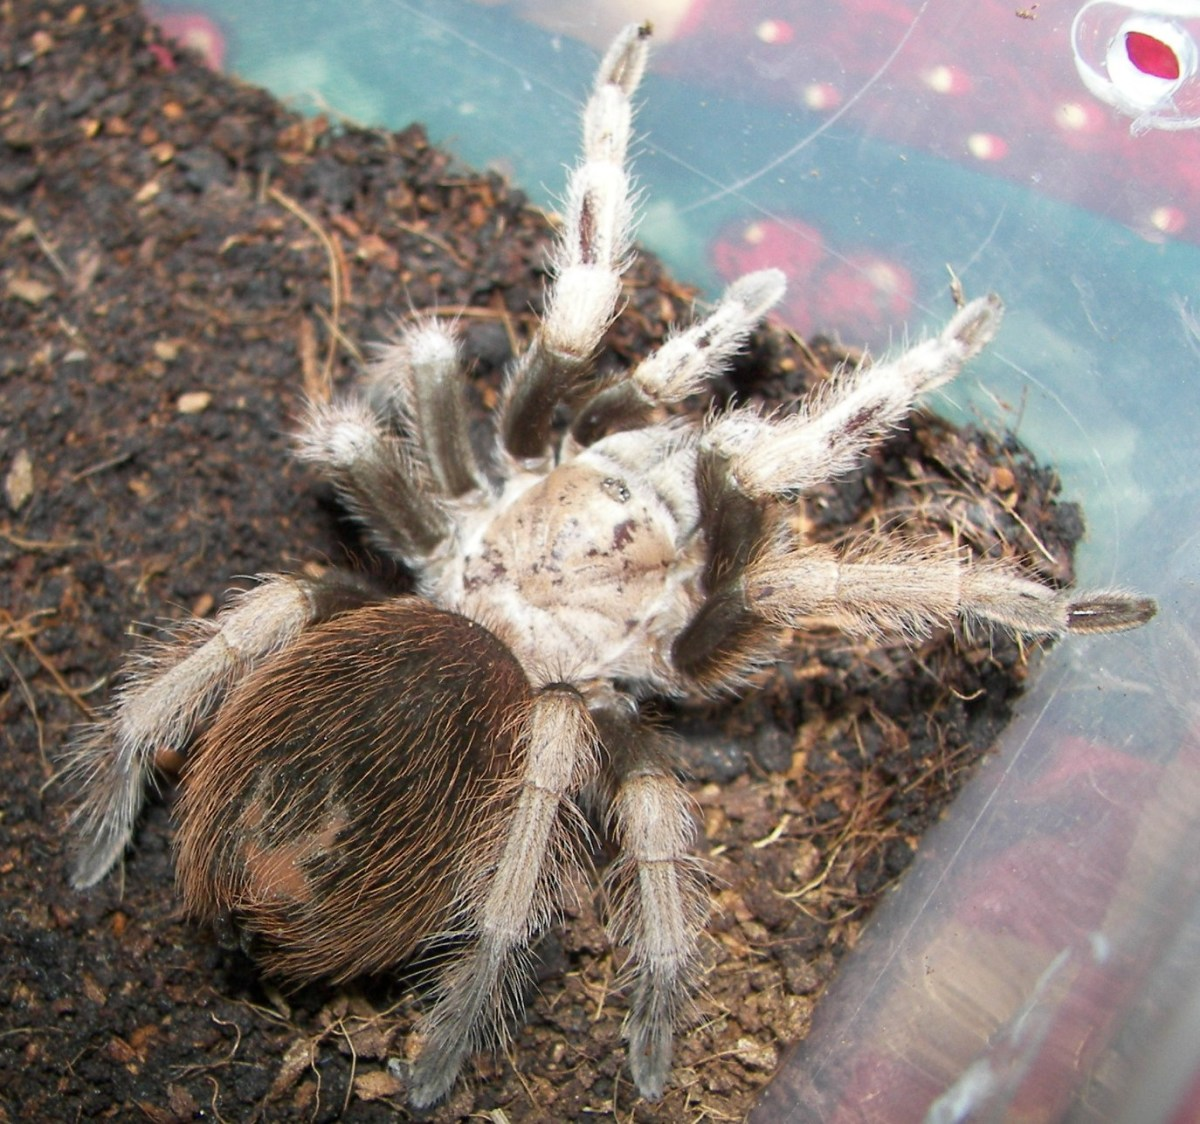 The western desert tarantula, Arizona blond tarantula or Mexican blond tarantula.